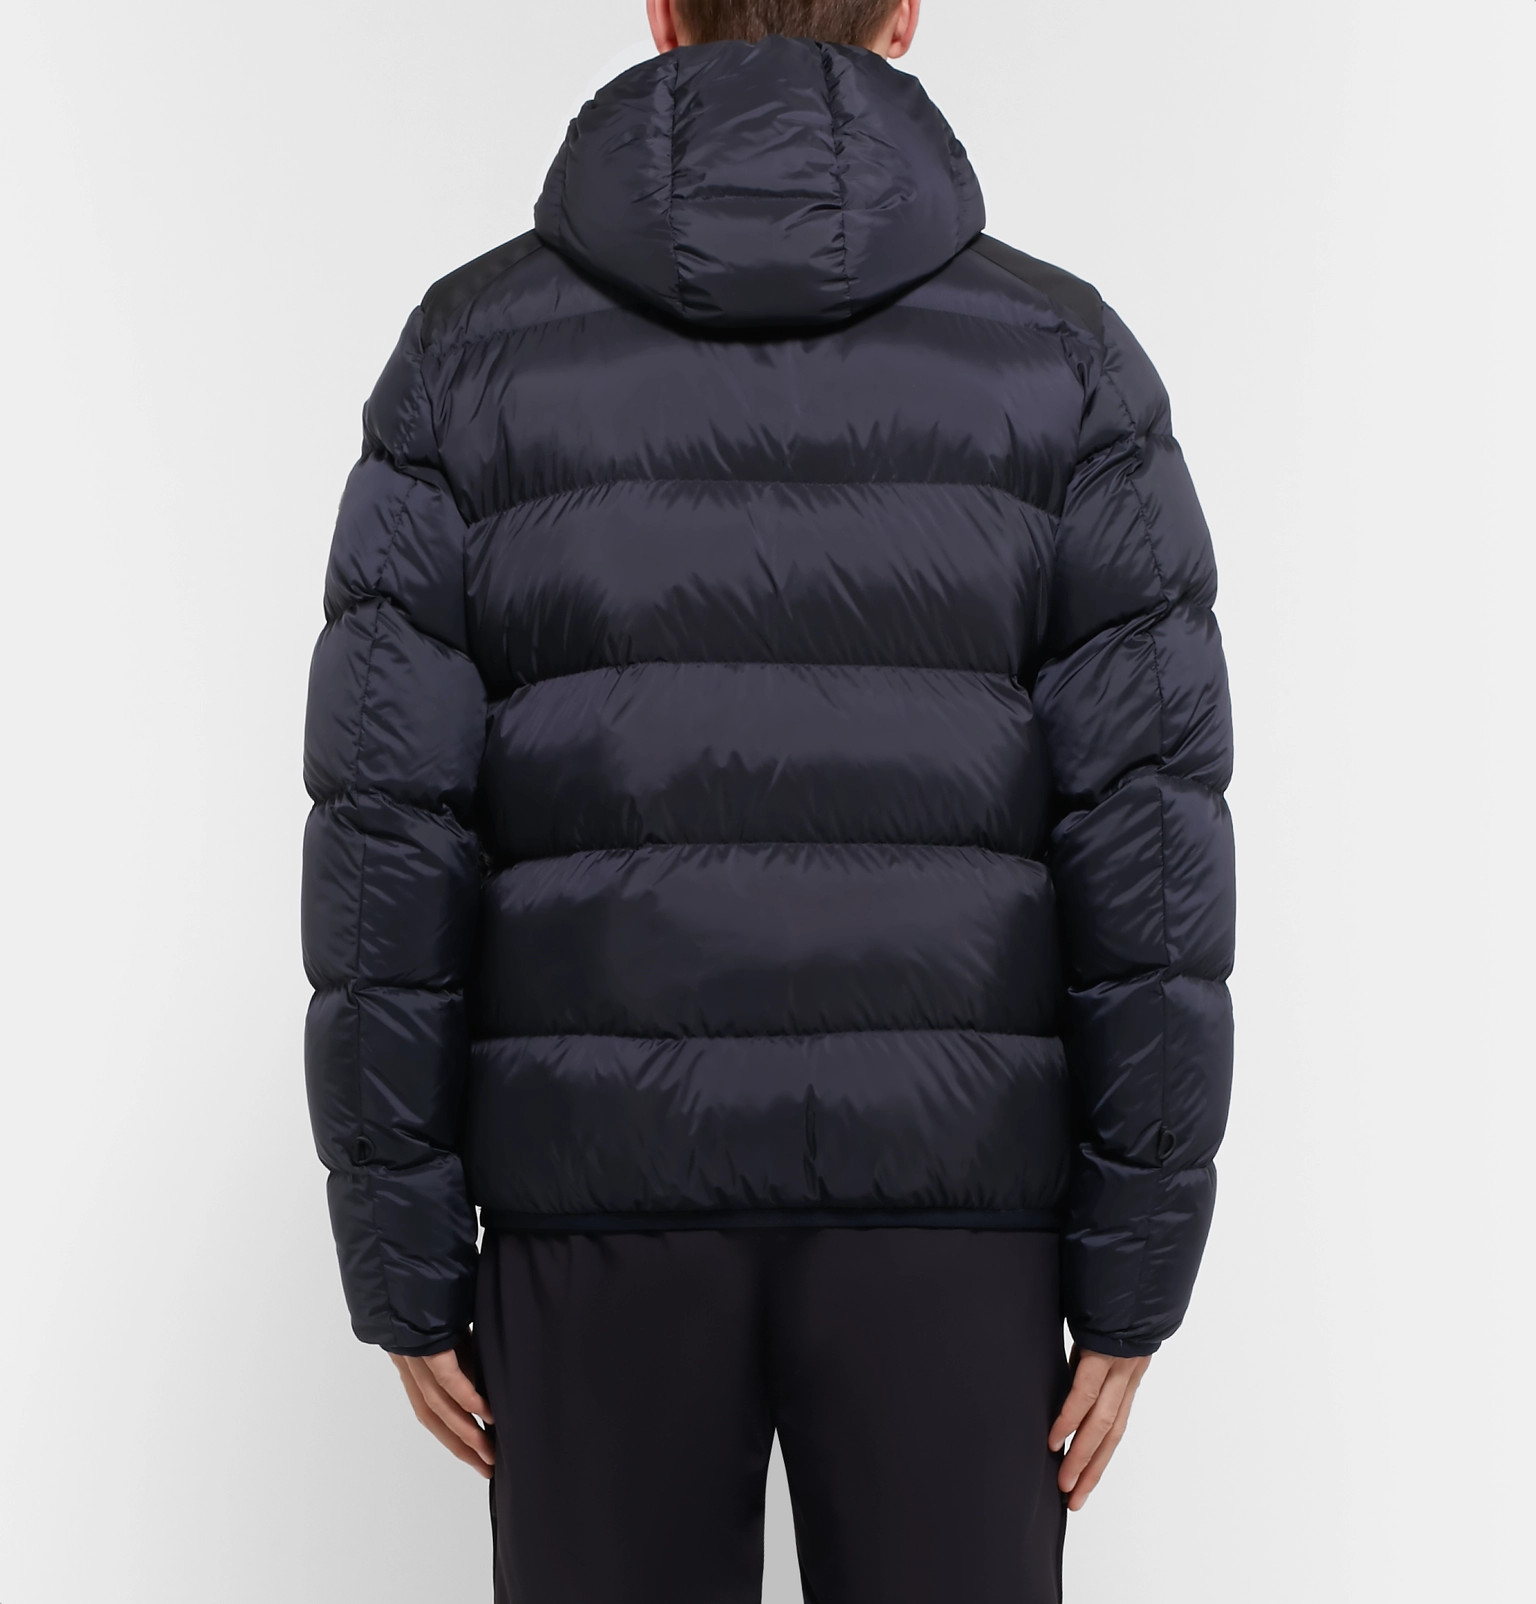 b513213dc Moncler Grenoble - Hintertux Quilted Shell Hooded Jacket